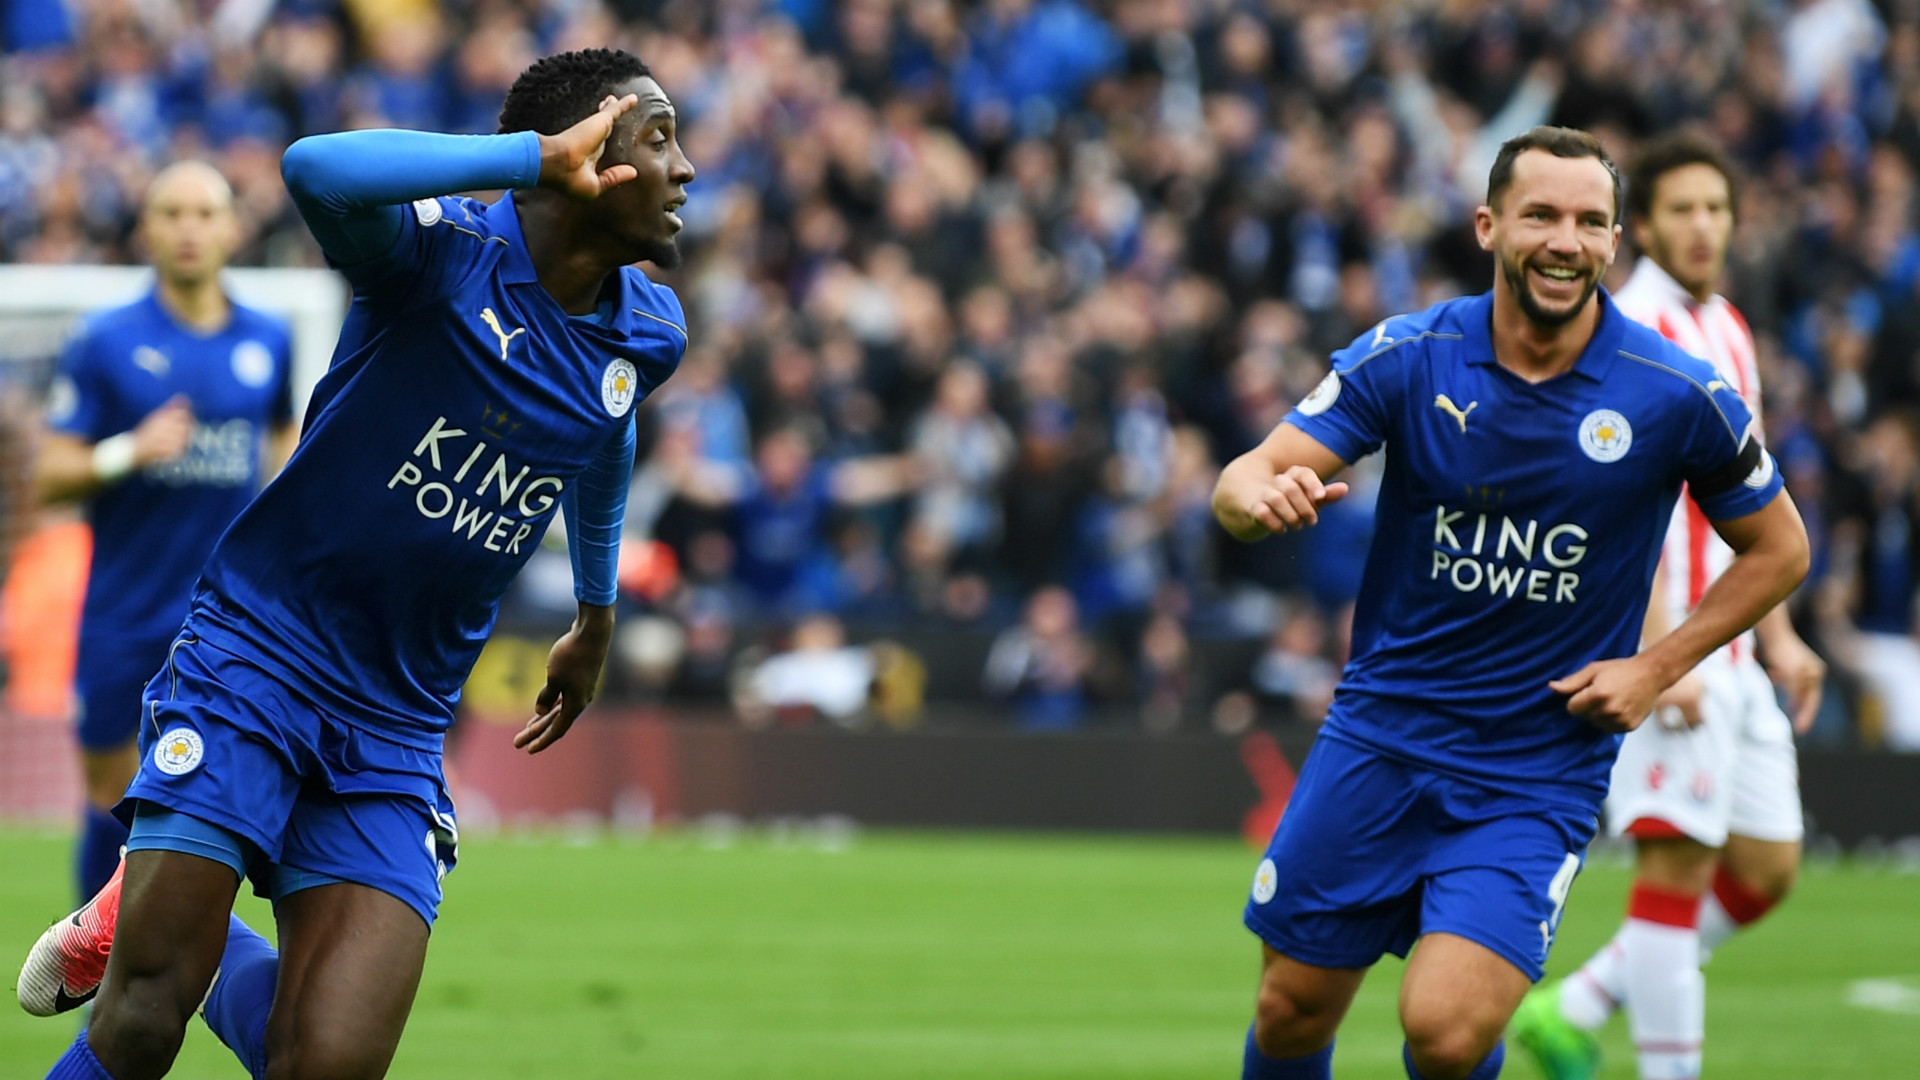 Leicester must rebound from Everton loss - Chilwell